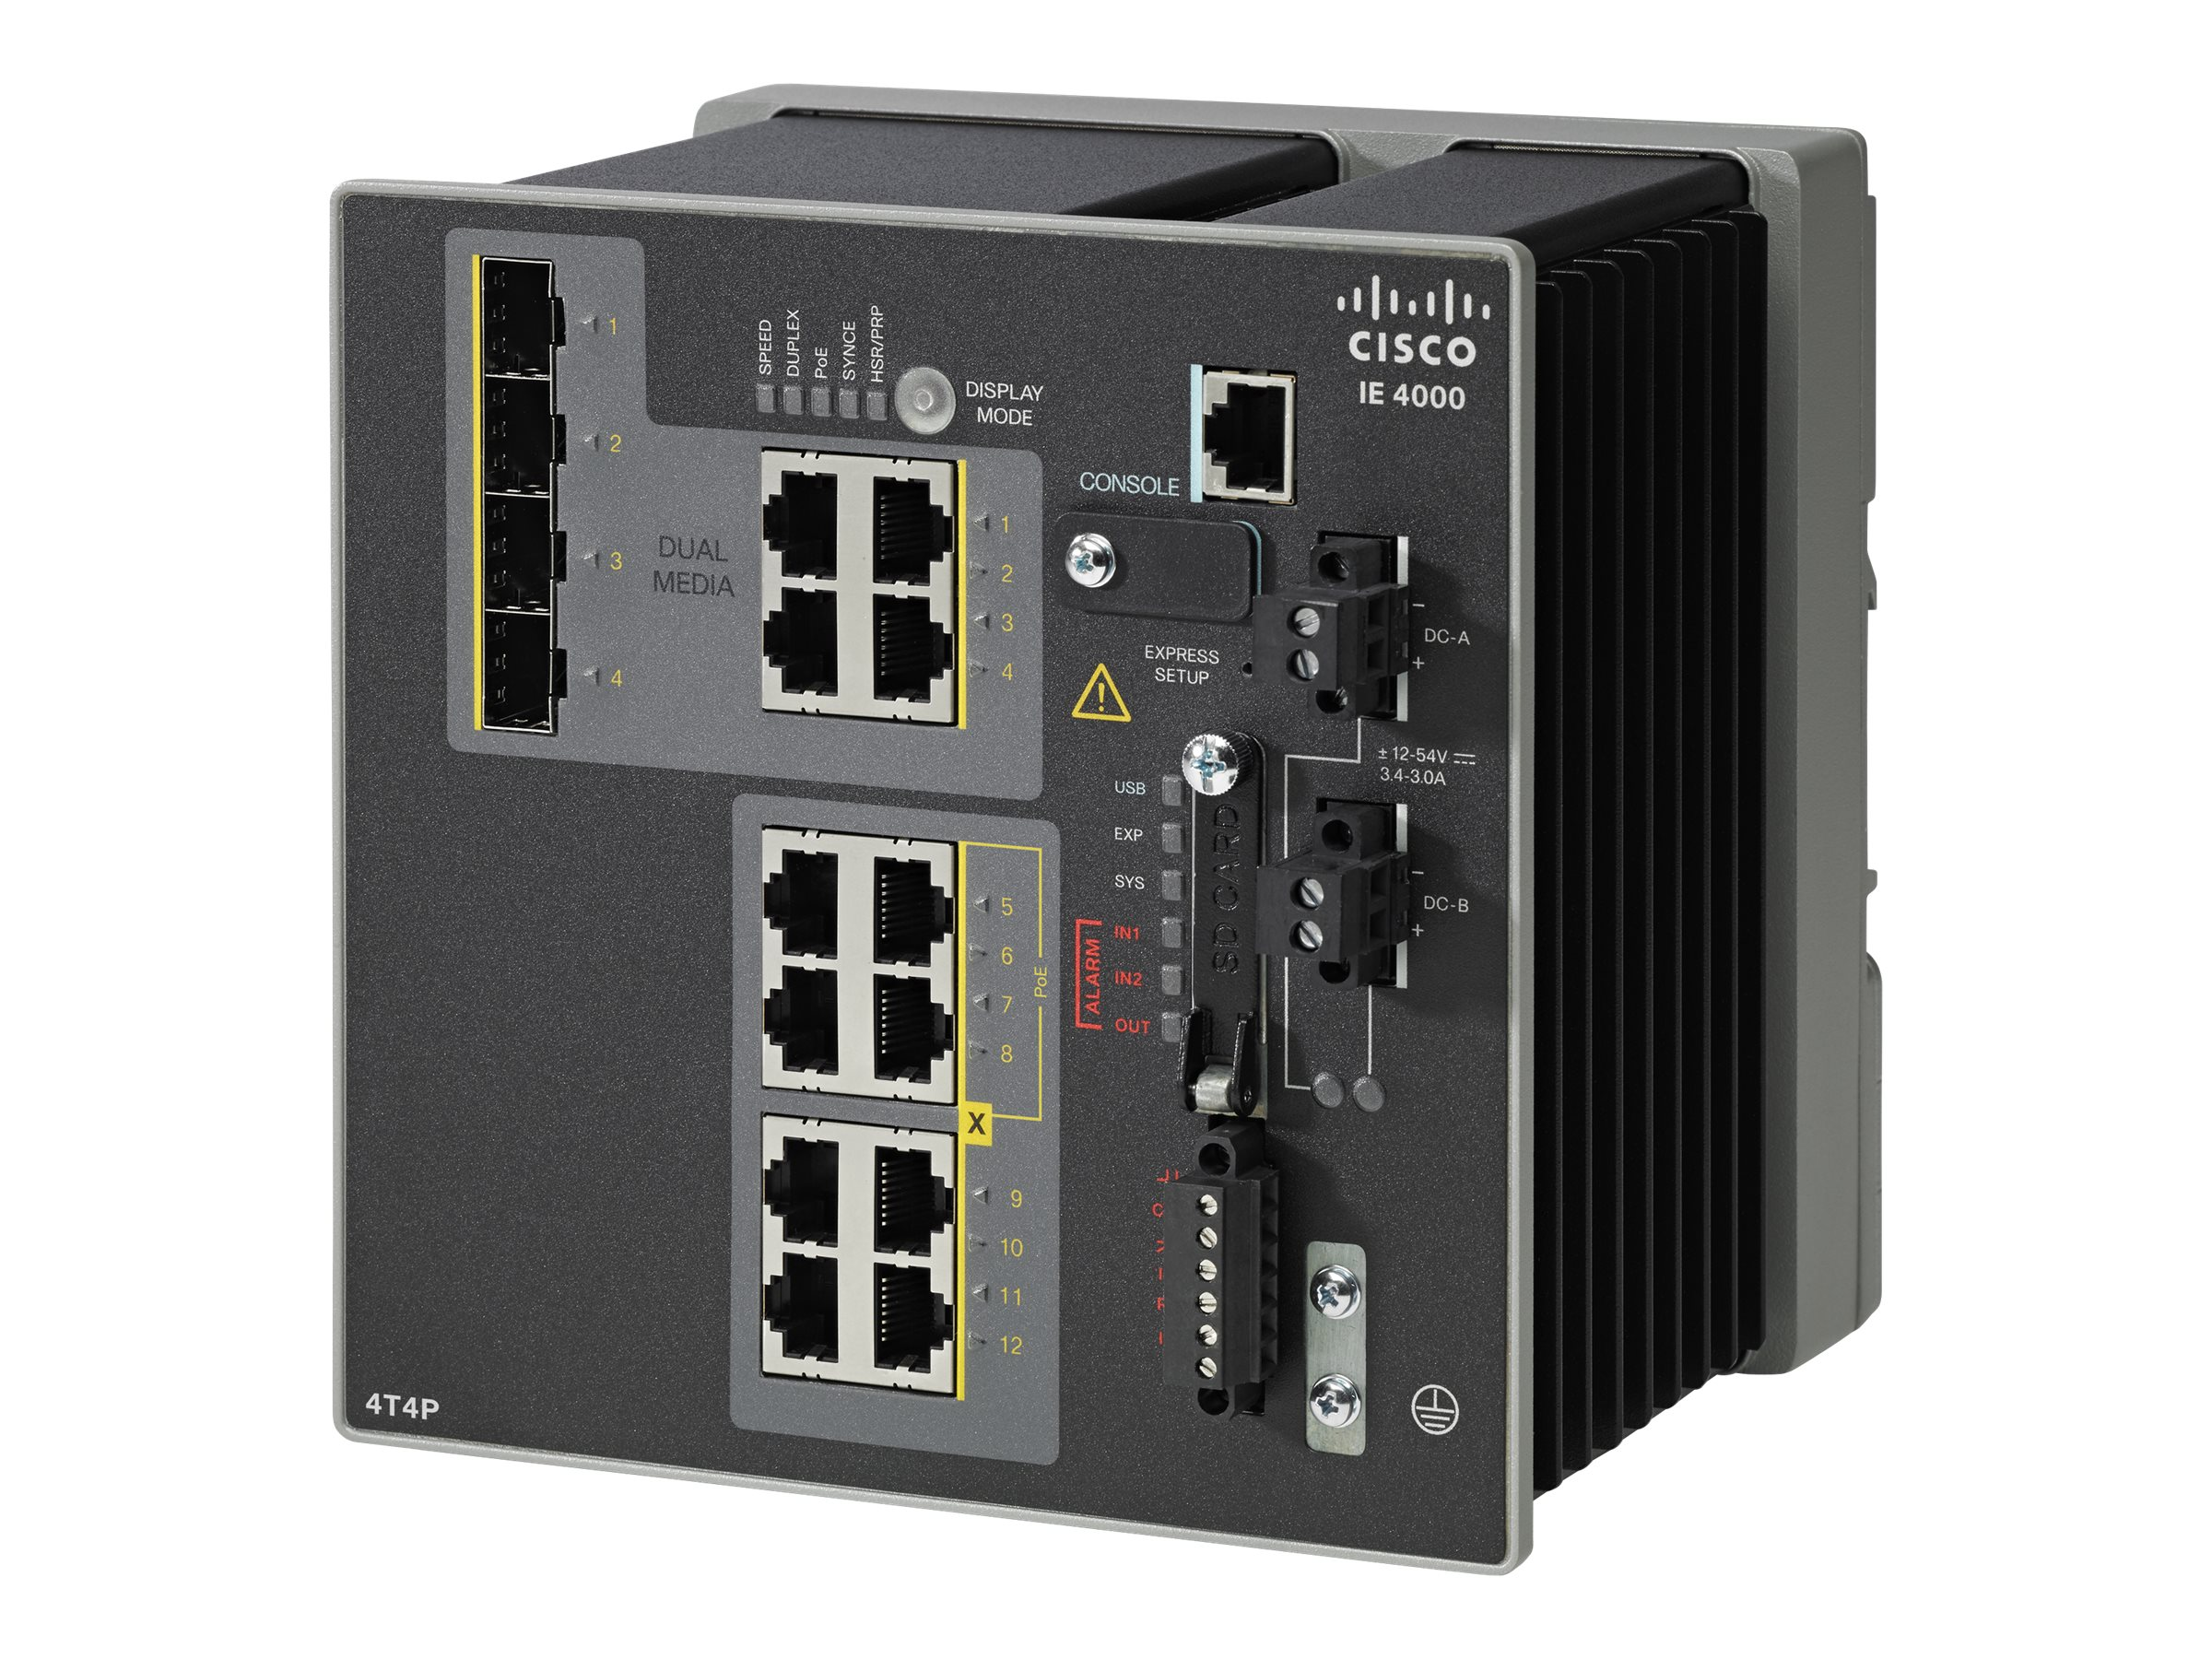 Cisco IE-4000-4T4P4G-E 12-Port (4x4G Uplink, 4xRJ-45, 4xPoE) Industrial Ethernet Switch